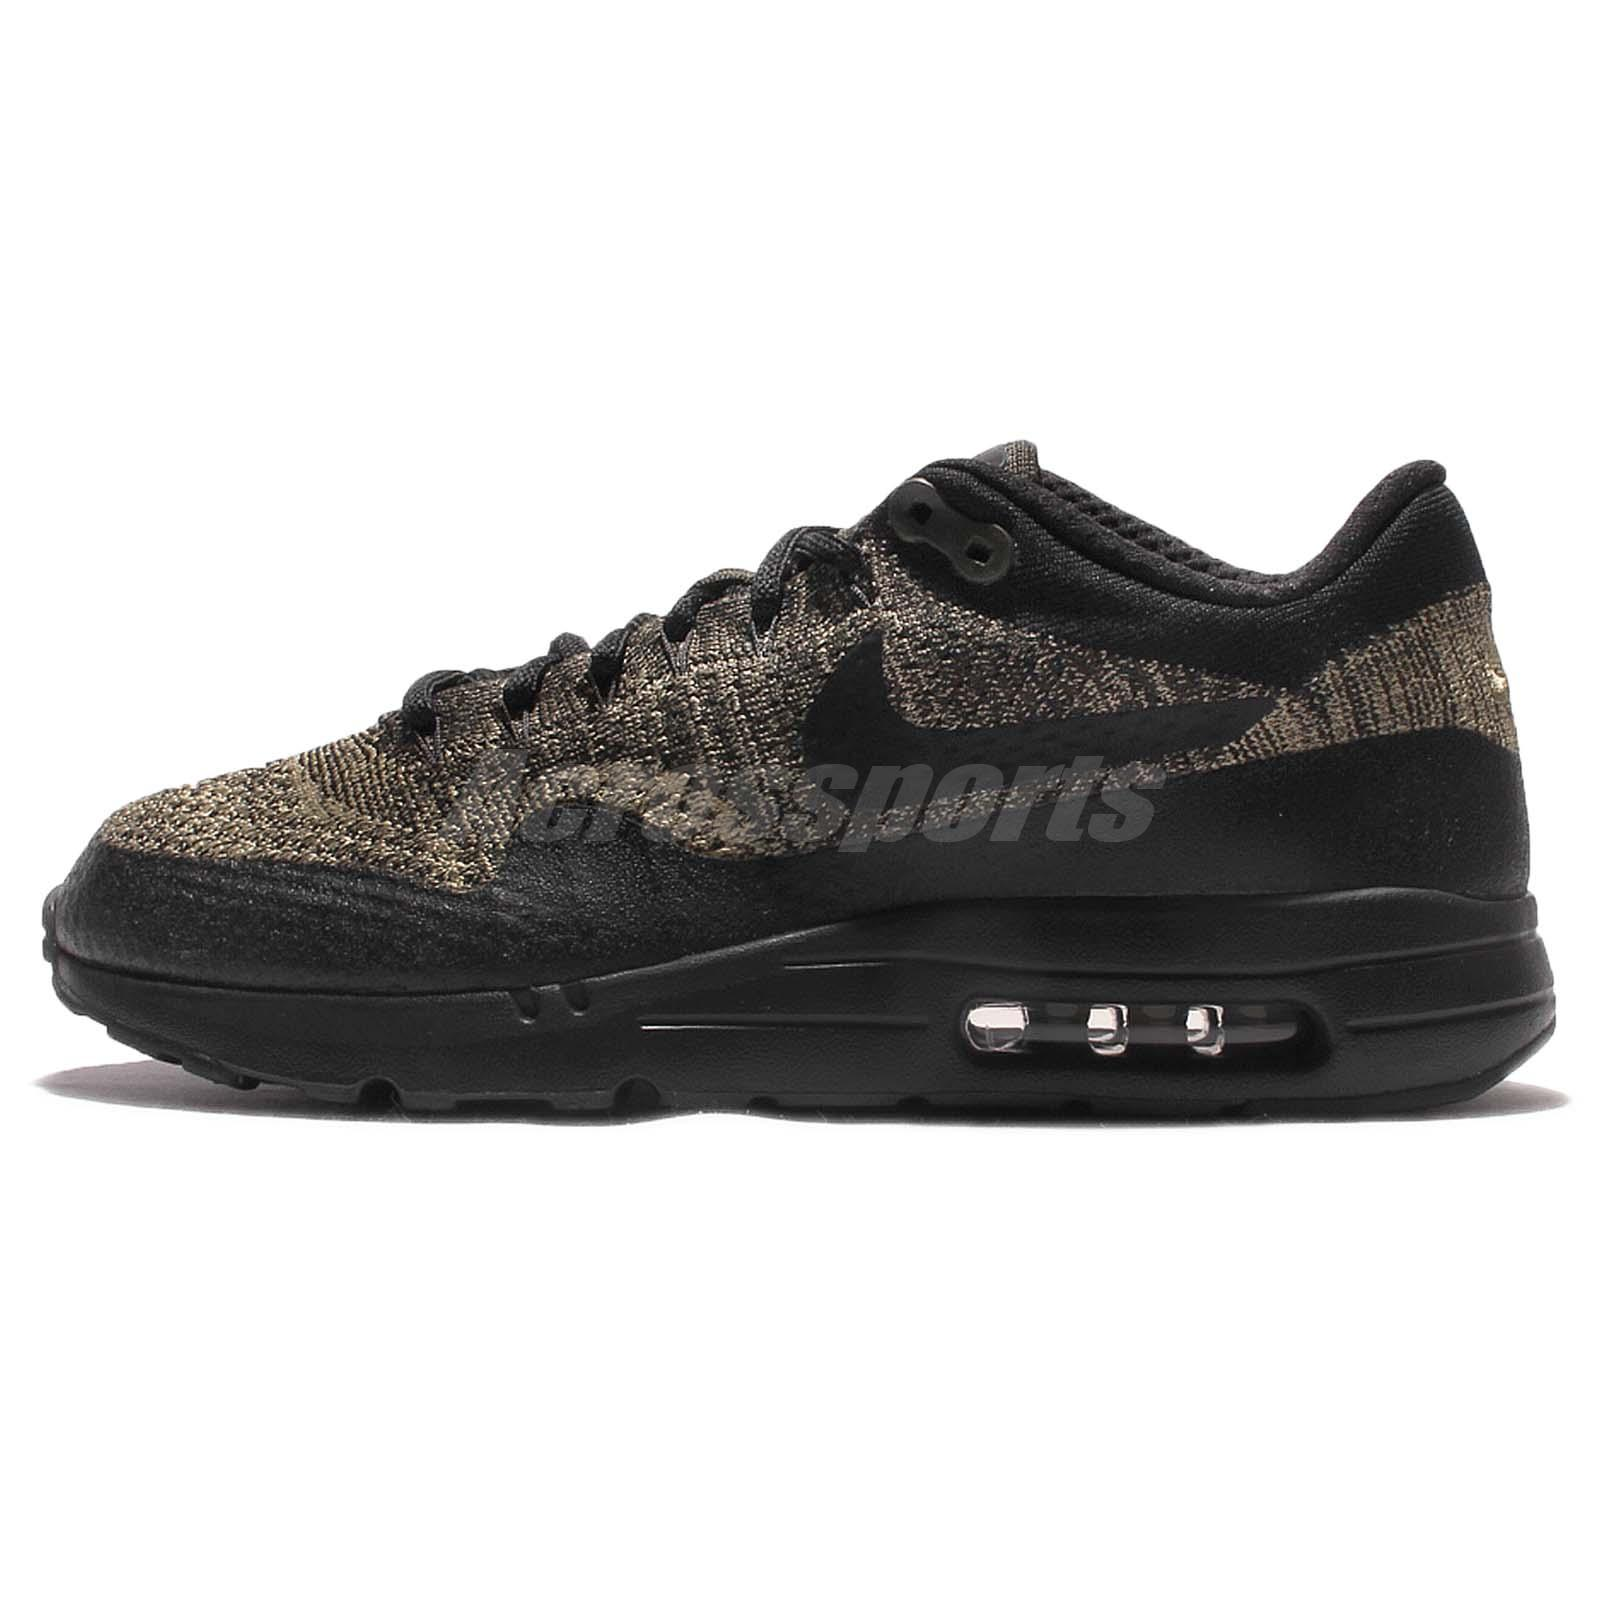 Nike air max 1 running shoes - Nike Air Max 1 Ultra Flyknit Black Green Mens Running Shoes Sneakers 856958 203